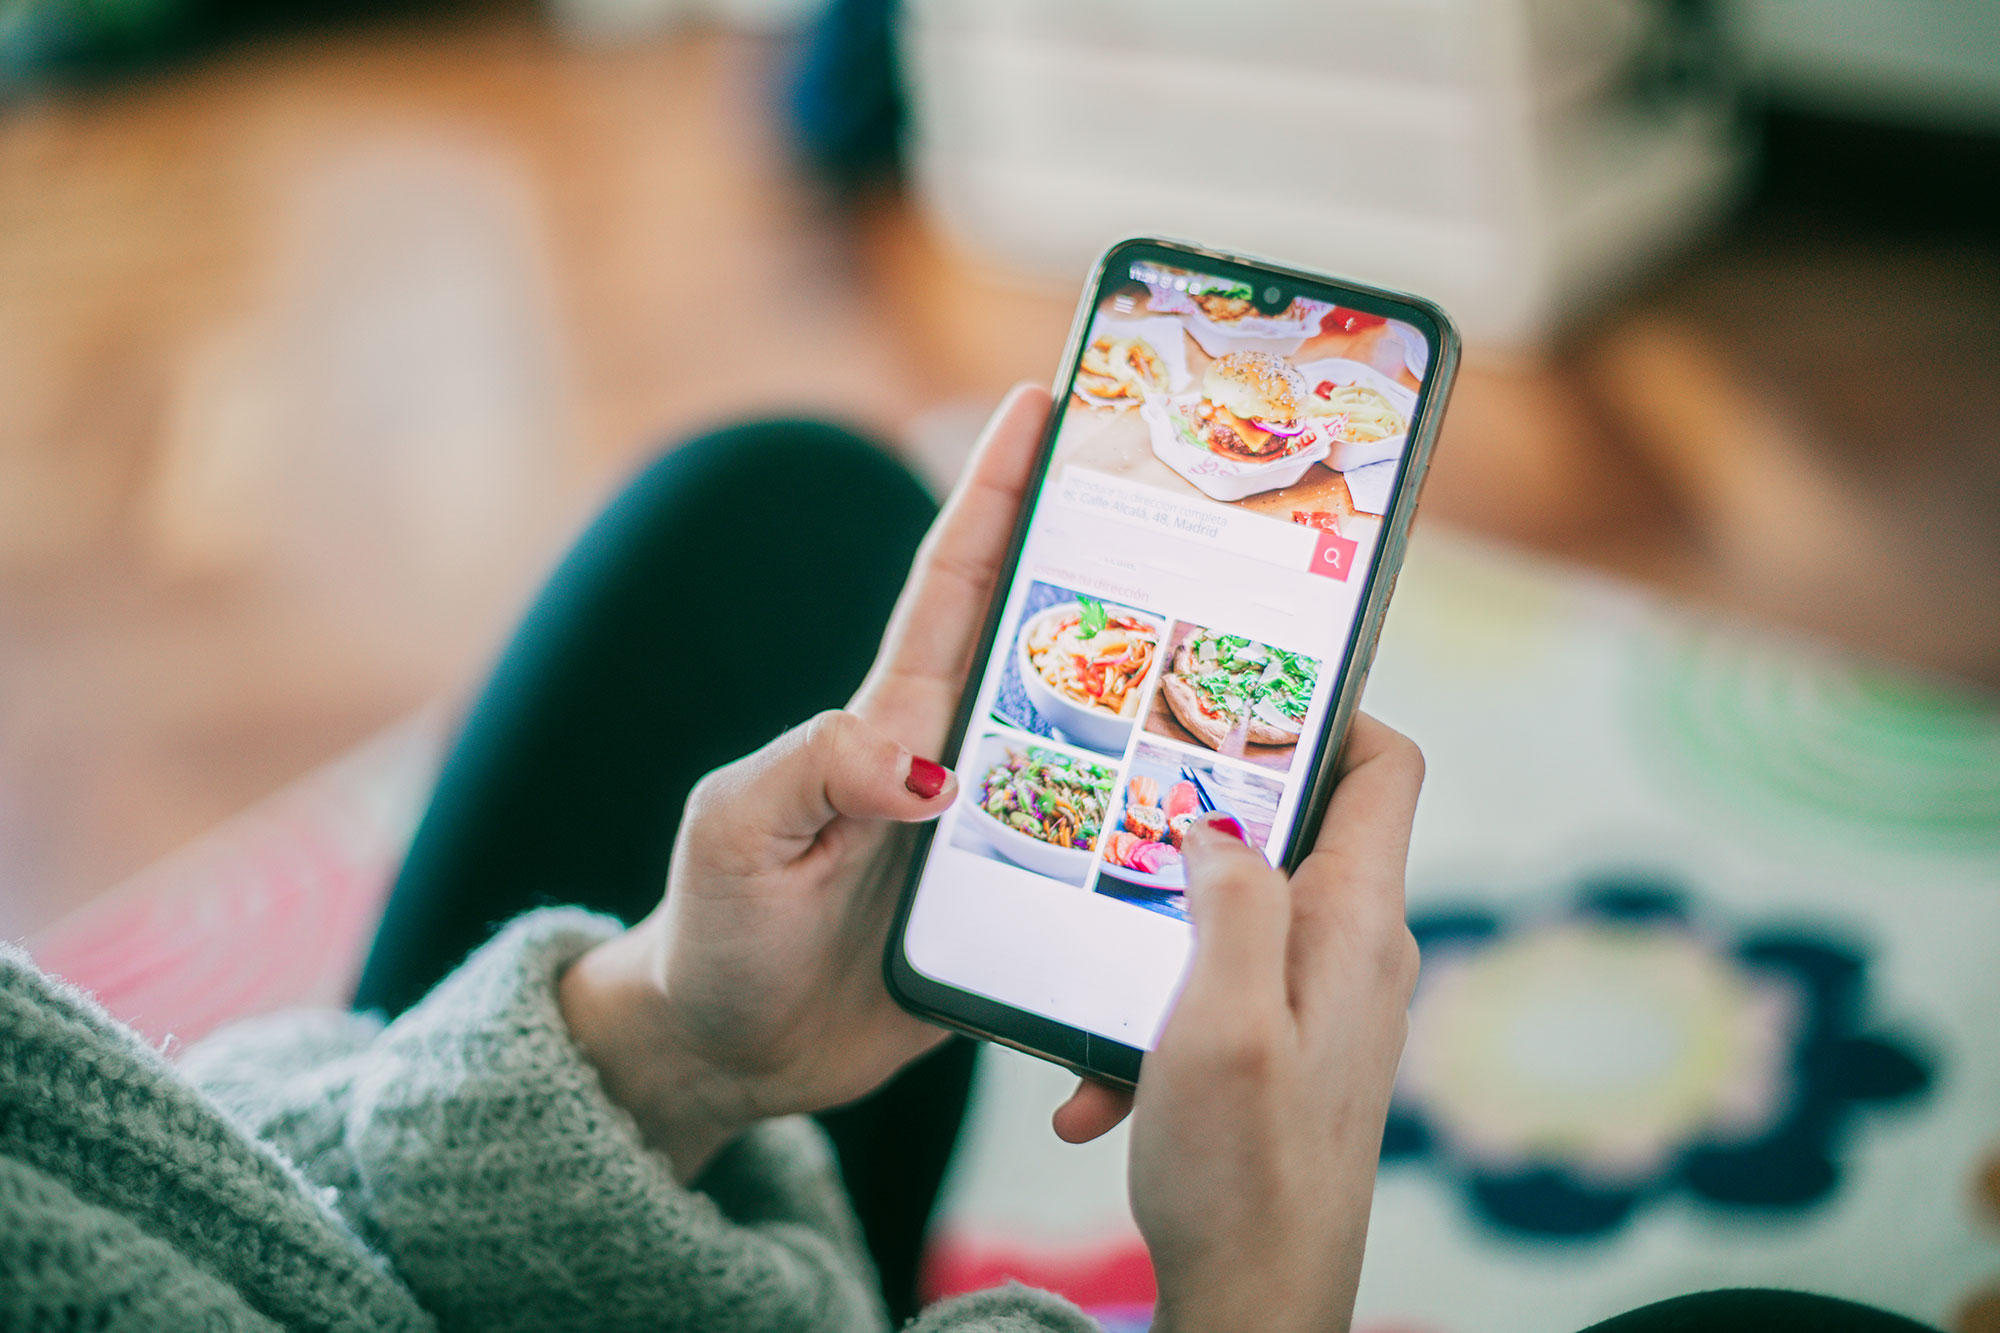 Woman using meal delivery service through mobile app.